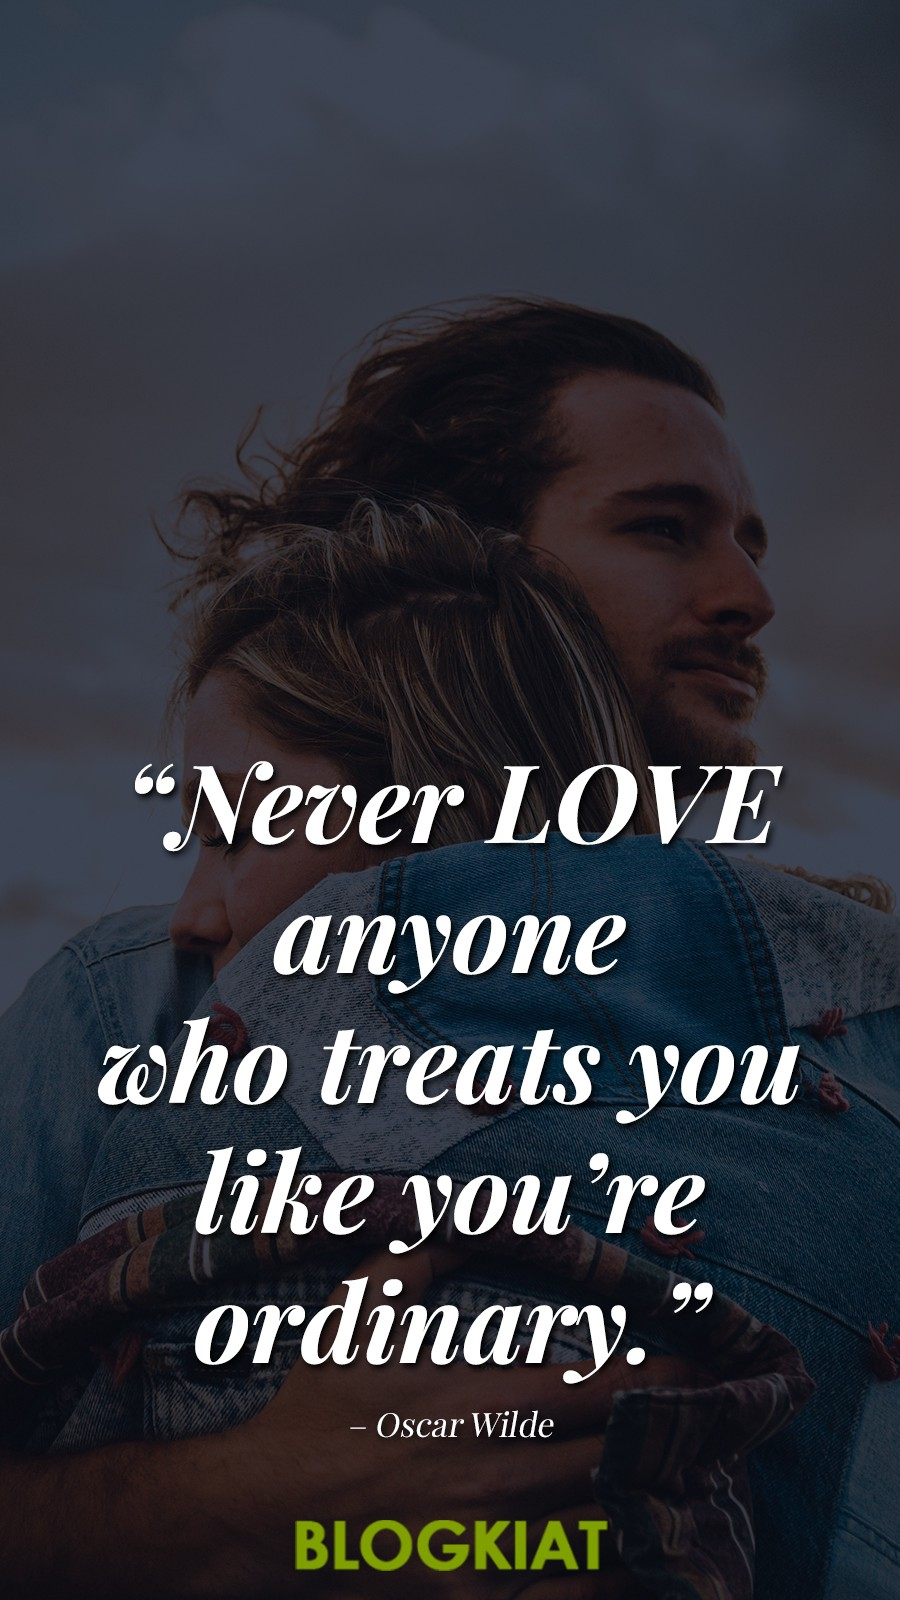 Best cute love quotes for her download free |Cute Quotes About Love For Her